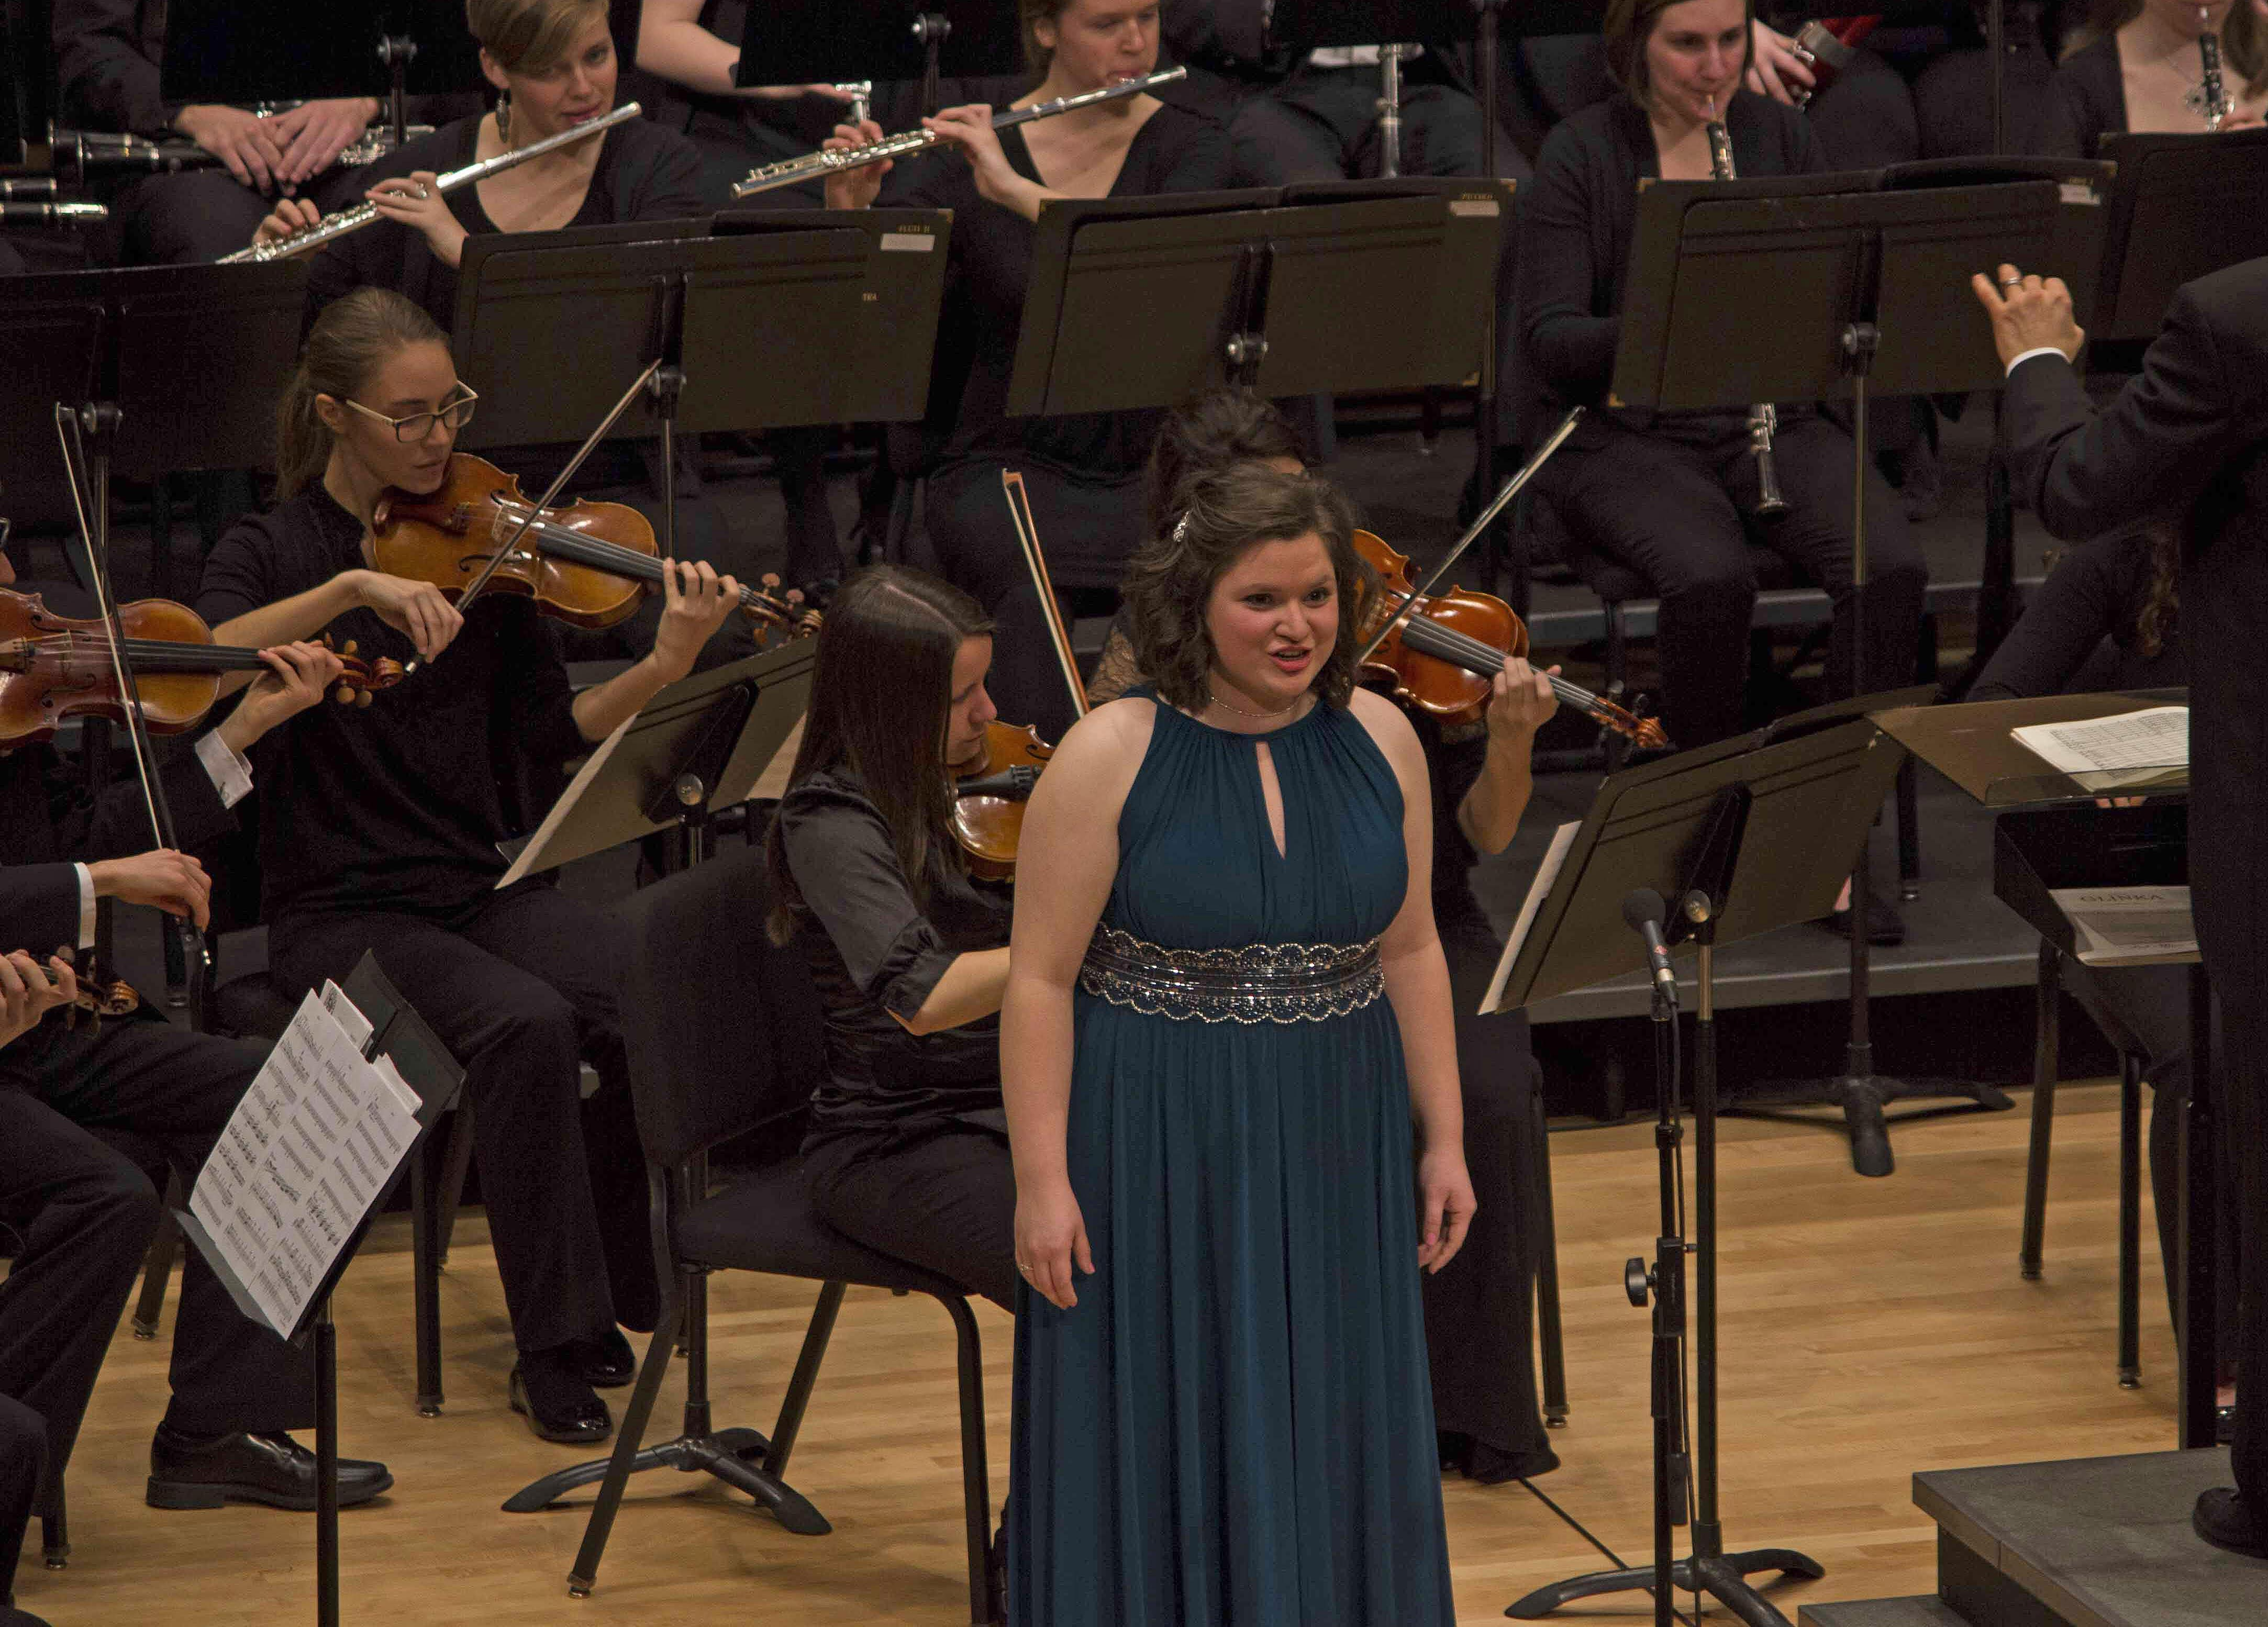 Miranda Earnhart sings an aria with the Goshen orchestra during the Concerto-Aria concert in Sauder Hall